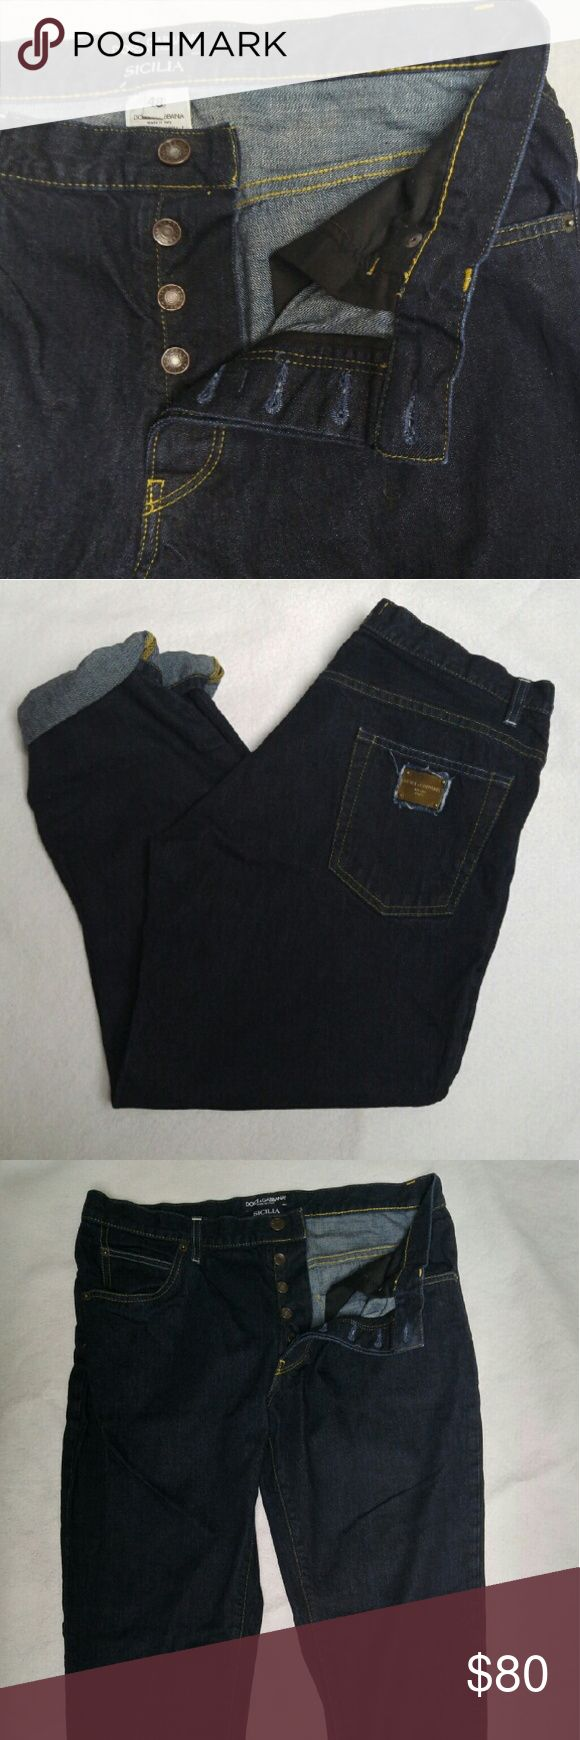 Dolce & Gabbana Sicilia Jeans Dolce & Gabbana Sacilia  Italy Dark Indigo wash Button fly Tapered Leg 100%cotton Size 48 I am not suggesting these are size 12, but believe they are close Please refer to measurements when converting size!!! Waist:34 Rise:10 Inseam 28 j-9 Dolce & Gabbana Jeans